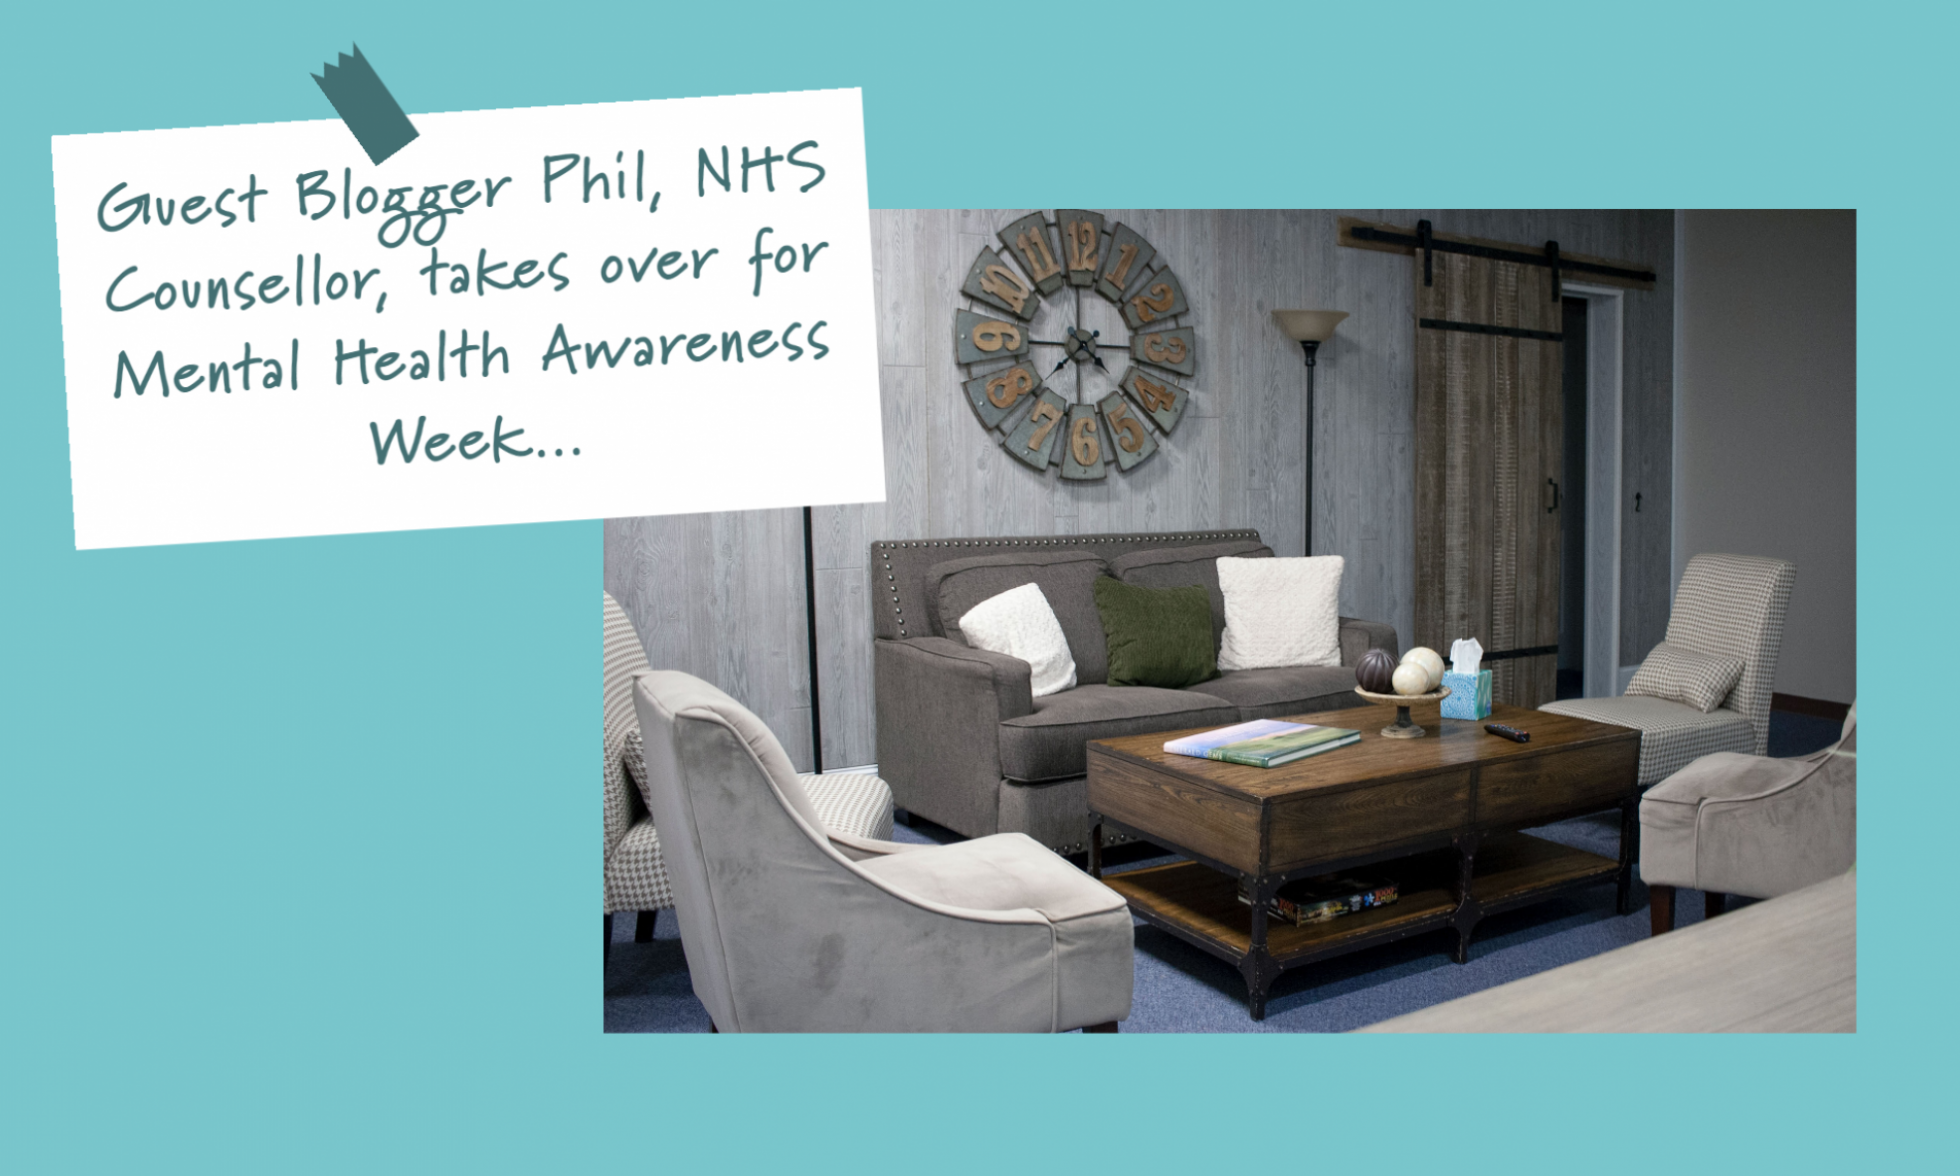 Guest Blogger Phil, NHS Counsellor, takes over for Mental Health Awareness Week...